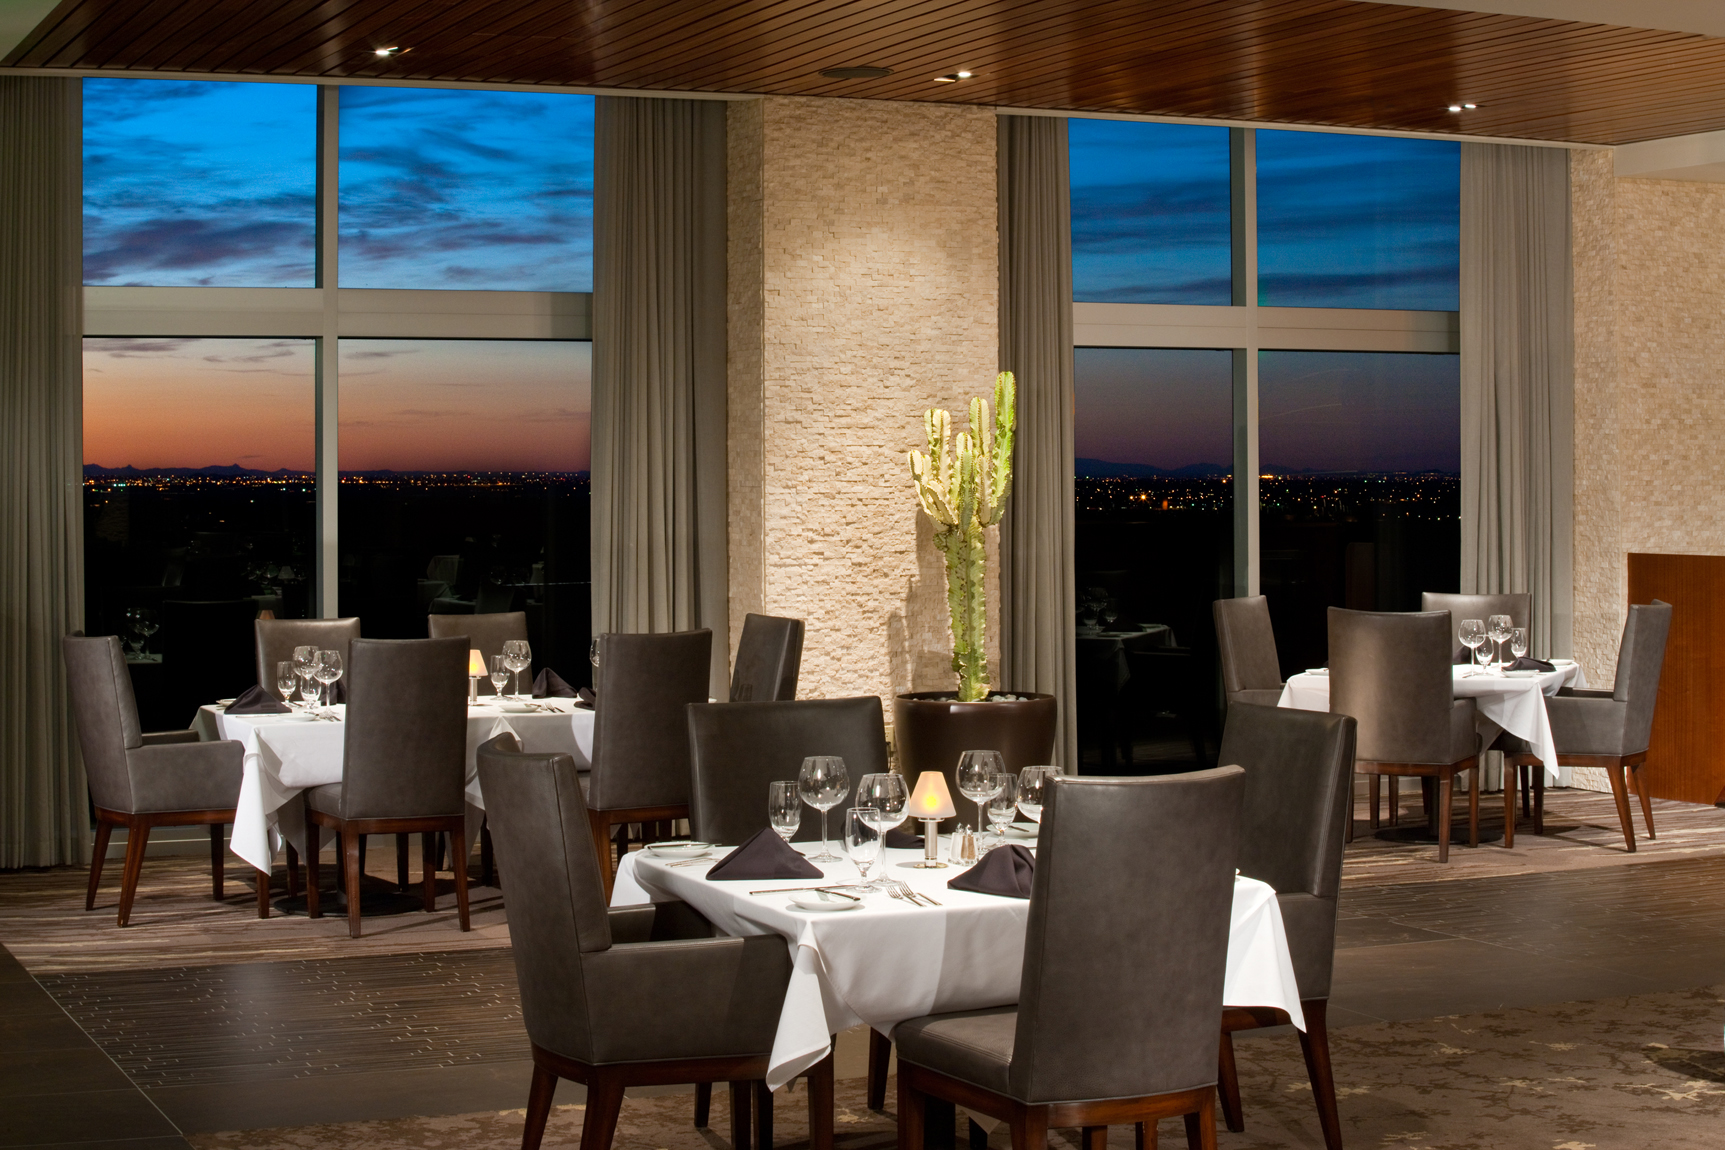 Twilight view of dining room with nicely lit furnishings and dusk, blue windows. Hospitality, resort, casino, photography in Scottsdale, AZ.